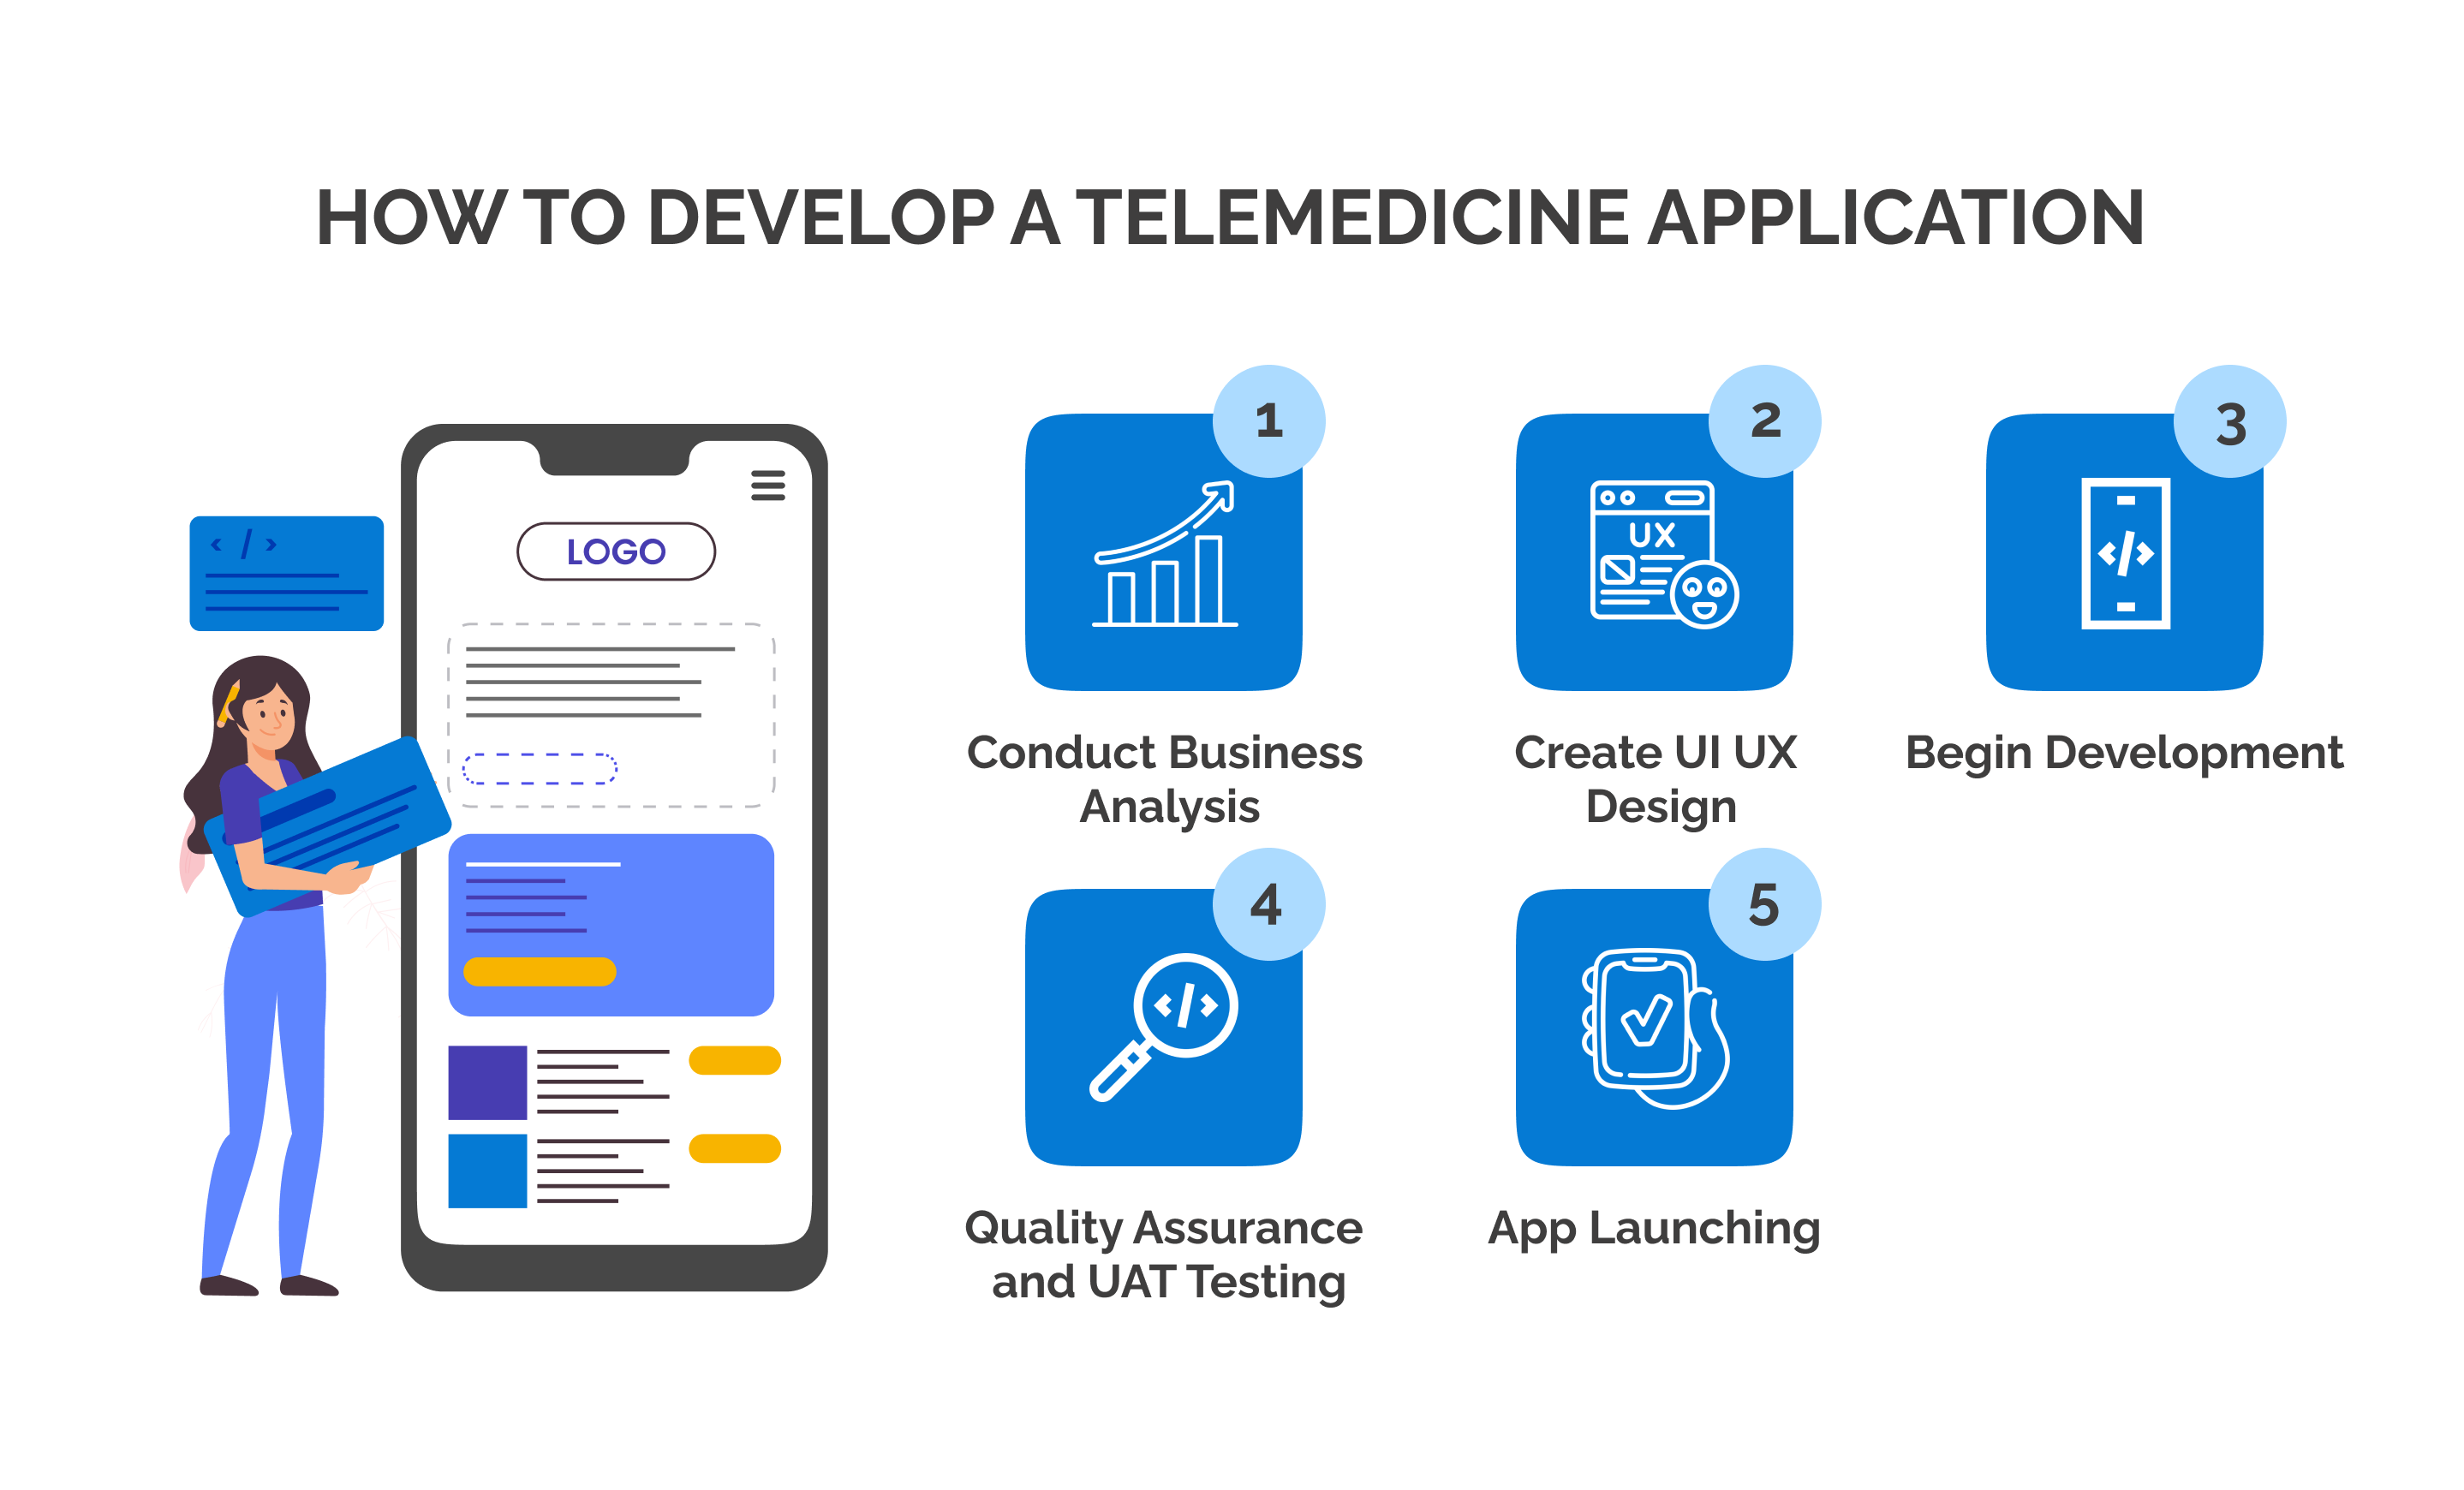 an illustration which explains how to develop a telemedicine application